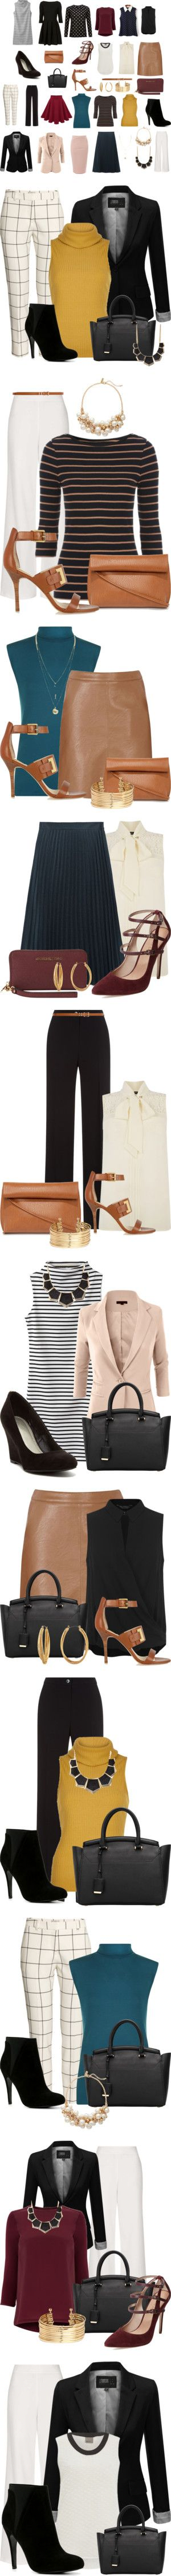 Work Wardrobe Basics on a Budget: 31 outfits by vanessa-bohlmann on Polyvore featuring H&M, Damsel in a Dress, Vero Moda, Oasis, Miss Selfridge, Glamorous, J.TOMSON, LE3NO, Nocturne #22 In C Sharp Minor, Op. Posth. and Warehouse